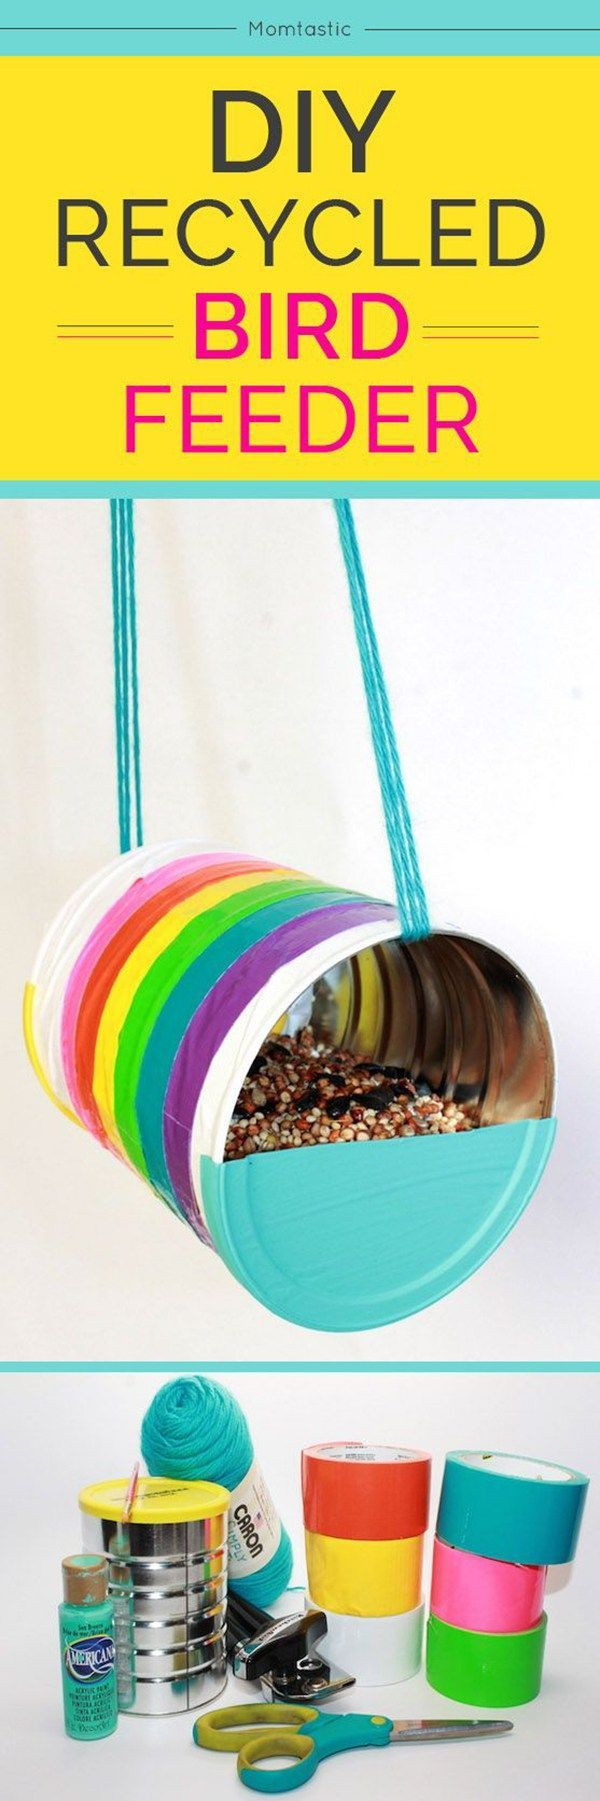 10 super simple diy bird feeders for spring do it yourself diy duct tape bird feeder click through to see more fantastic bird feeder diy tutorials the perfect spring projectdiy idea if love crafts and spring solutioingenieria Images